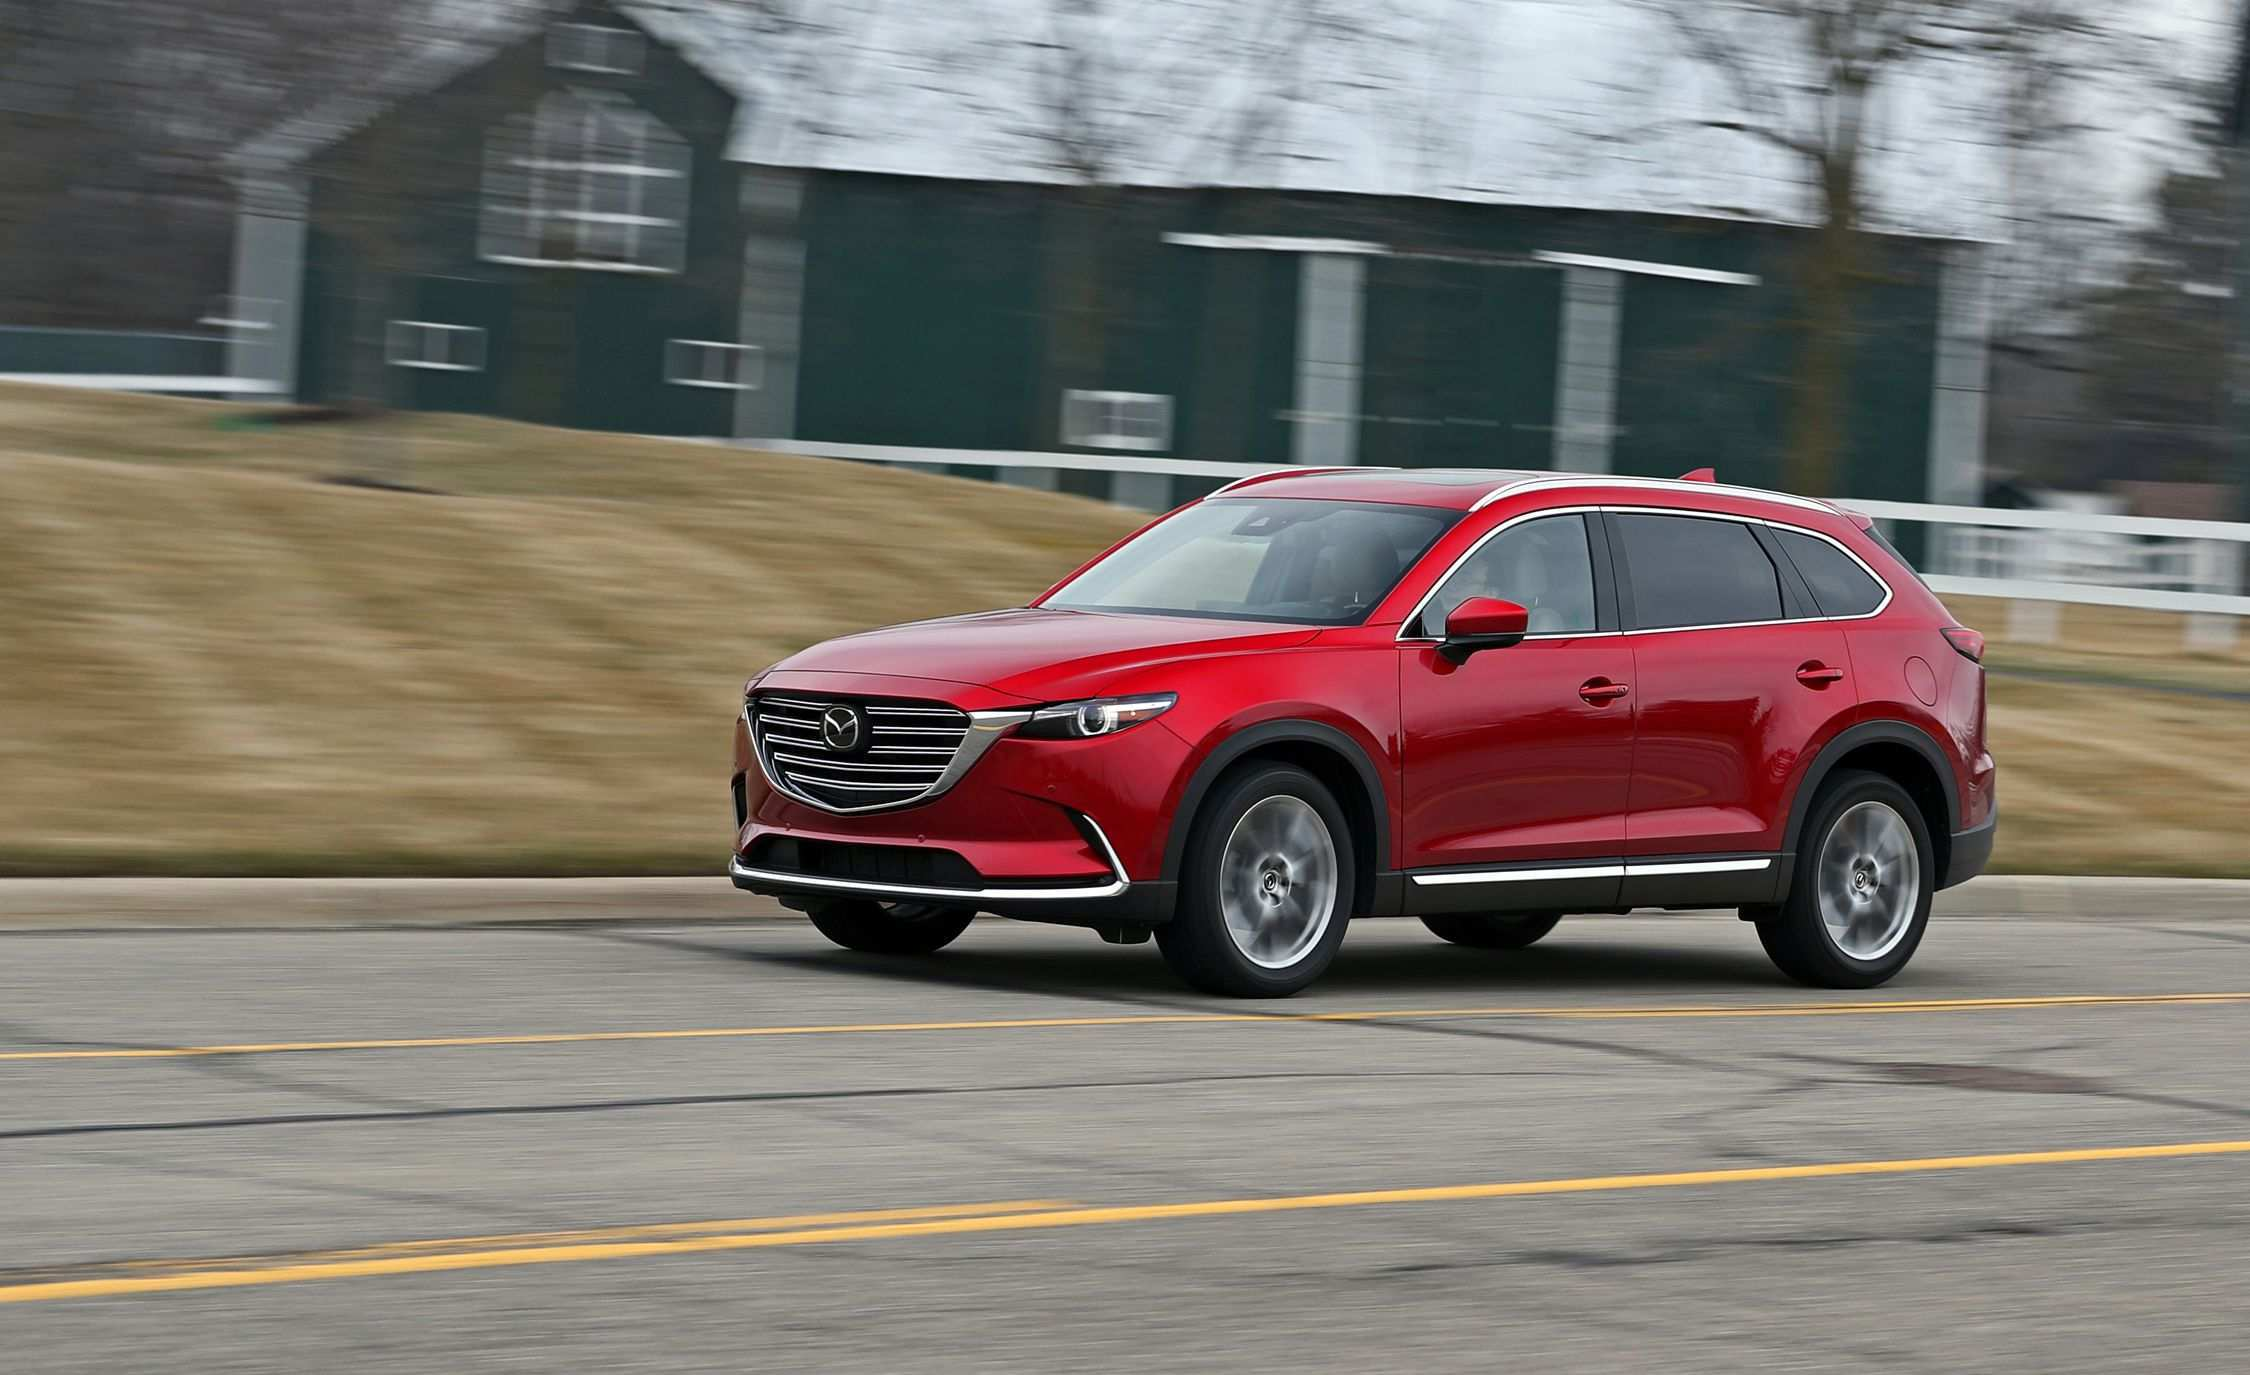 87 All New The Mazda X9 2019 Release Specs And Review First Drive for The Mazda X9 2019 Release Specs And Review